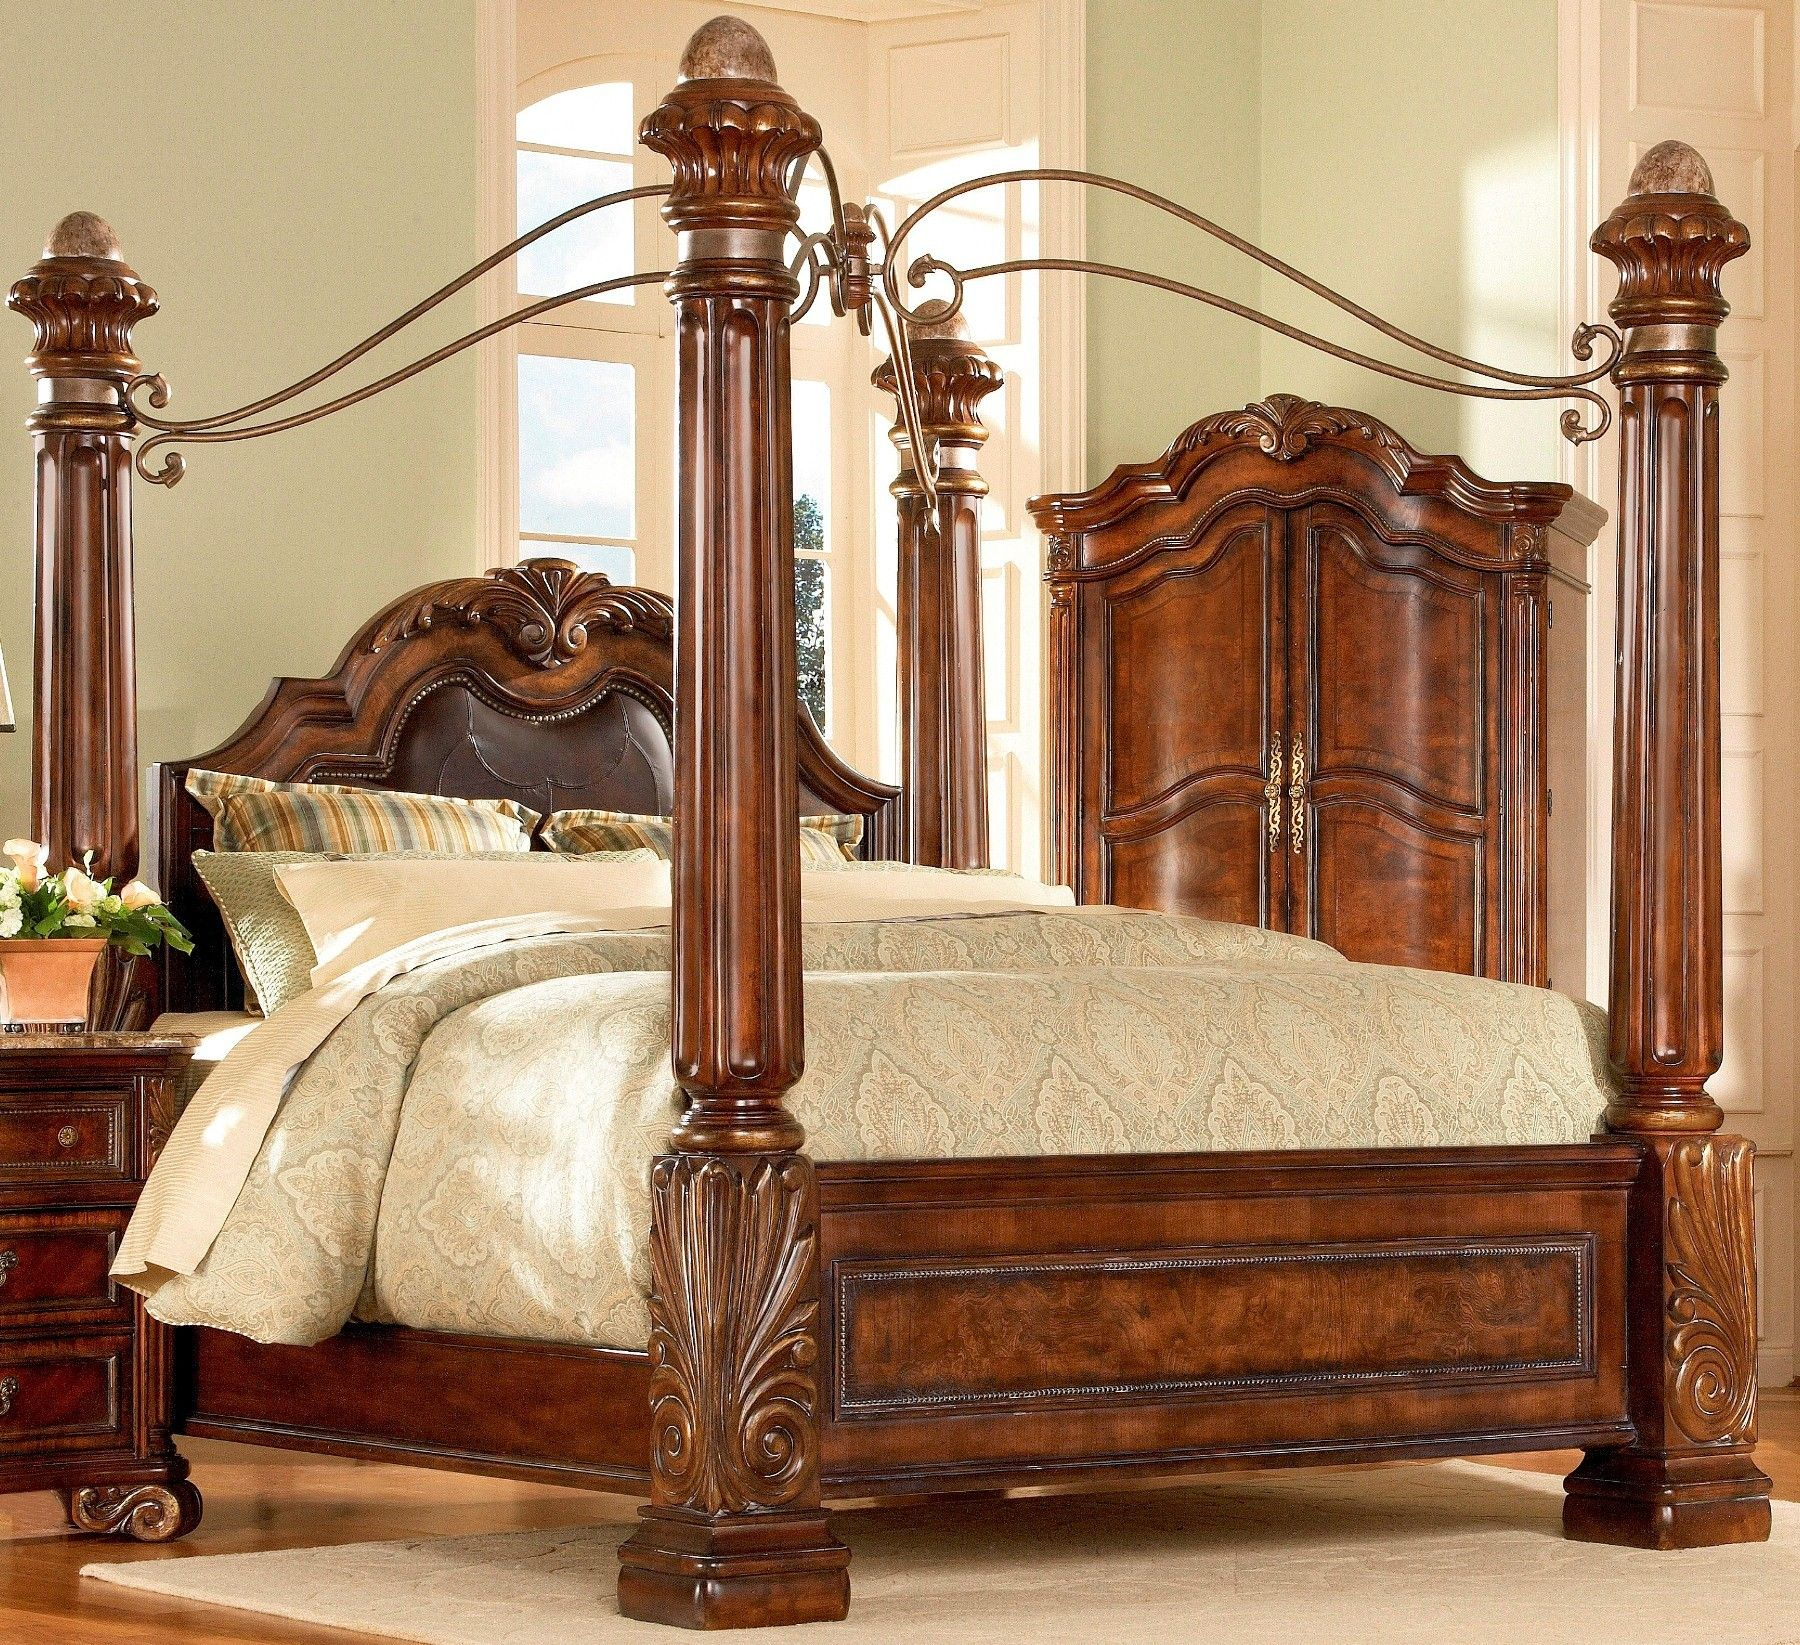 four poster bedroom sets | ART Regal Poster Bedroom Set - 142156 ...